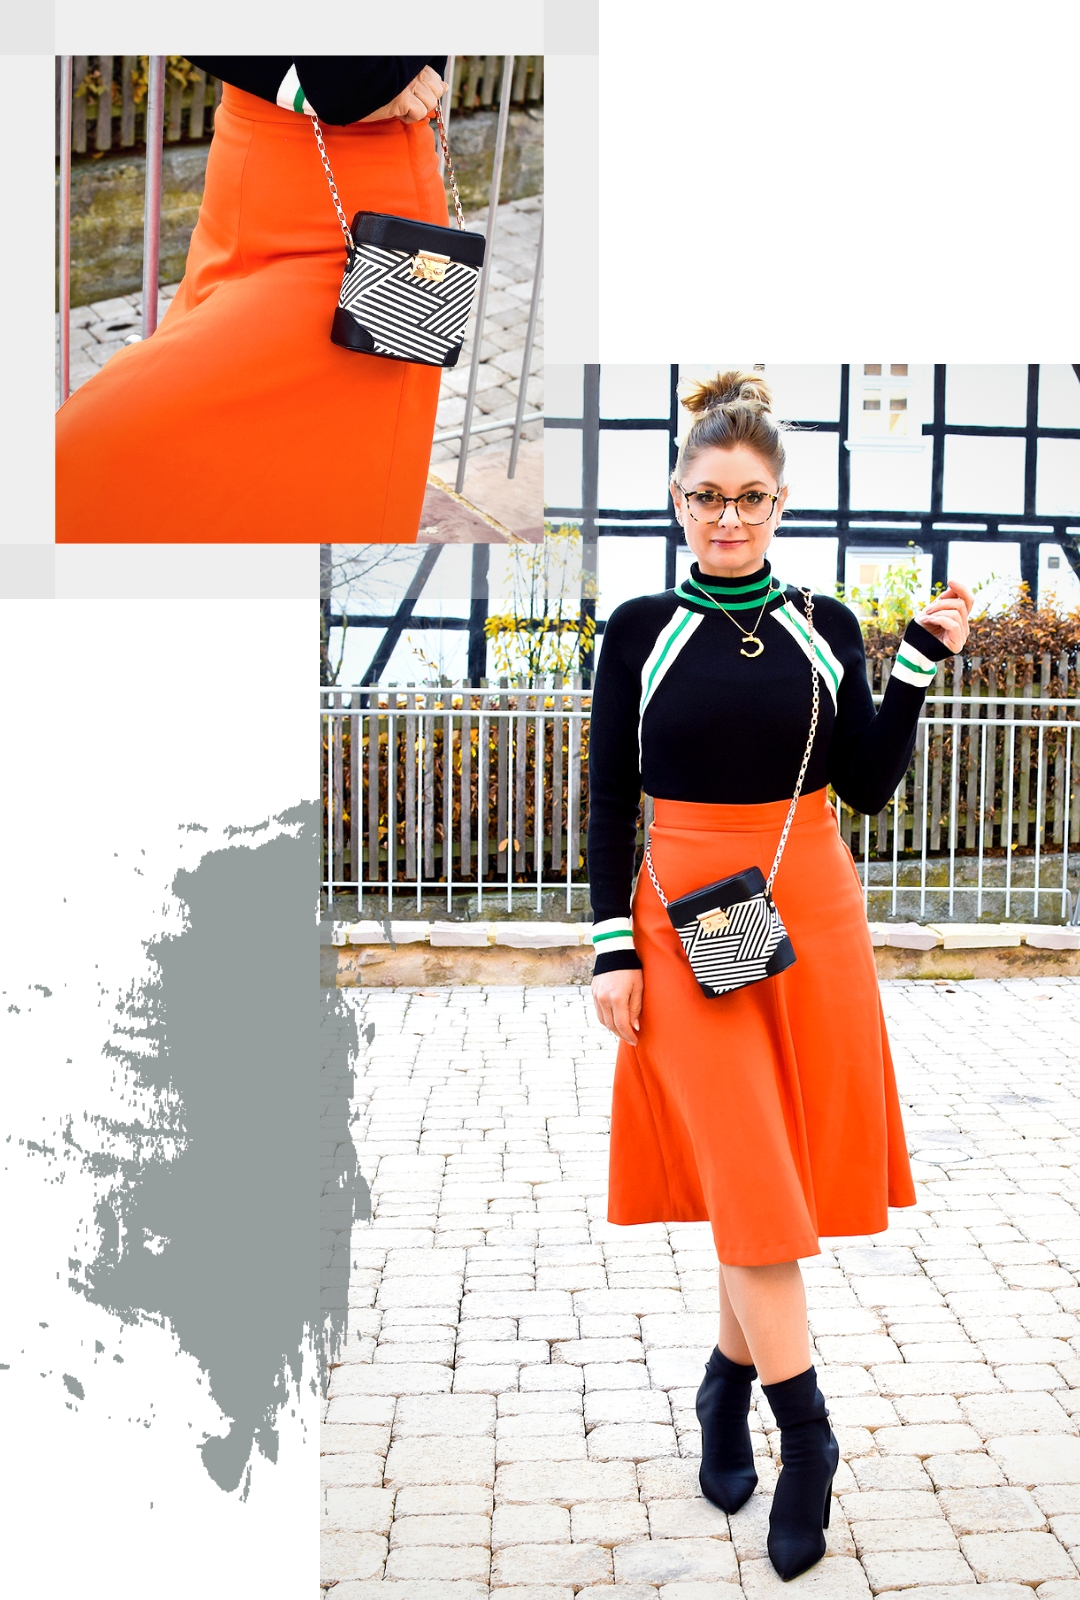 Rock in A-Linie, Orange, enger Pullover in Schwarz mit Turtleneck, Sockboots